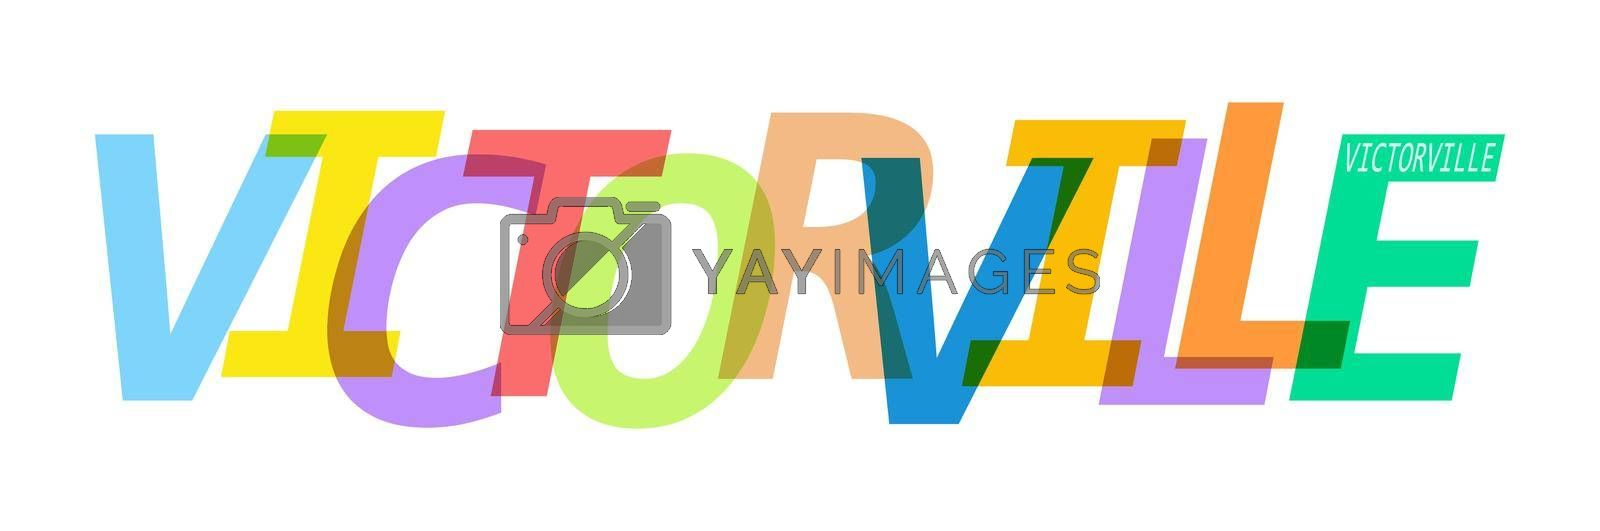 VICTORVILLE. The name of the city on a white background. Vector design template for poster, postcard, banner. Vector illustration.